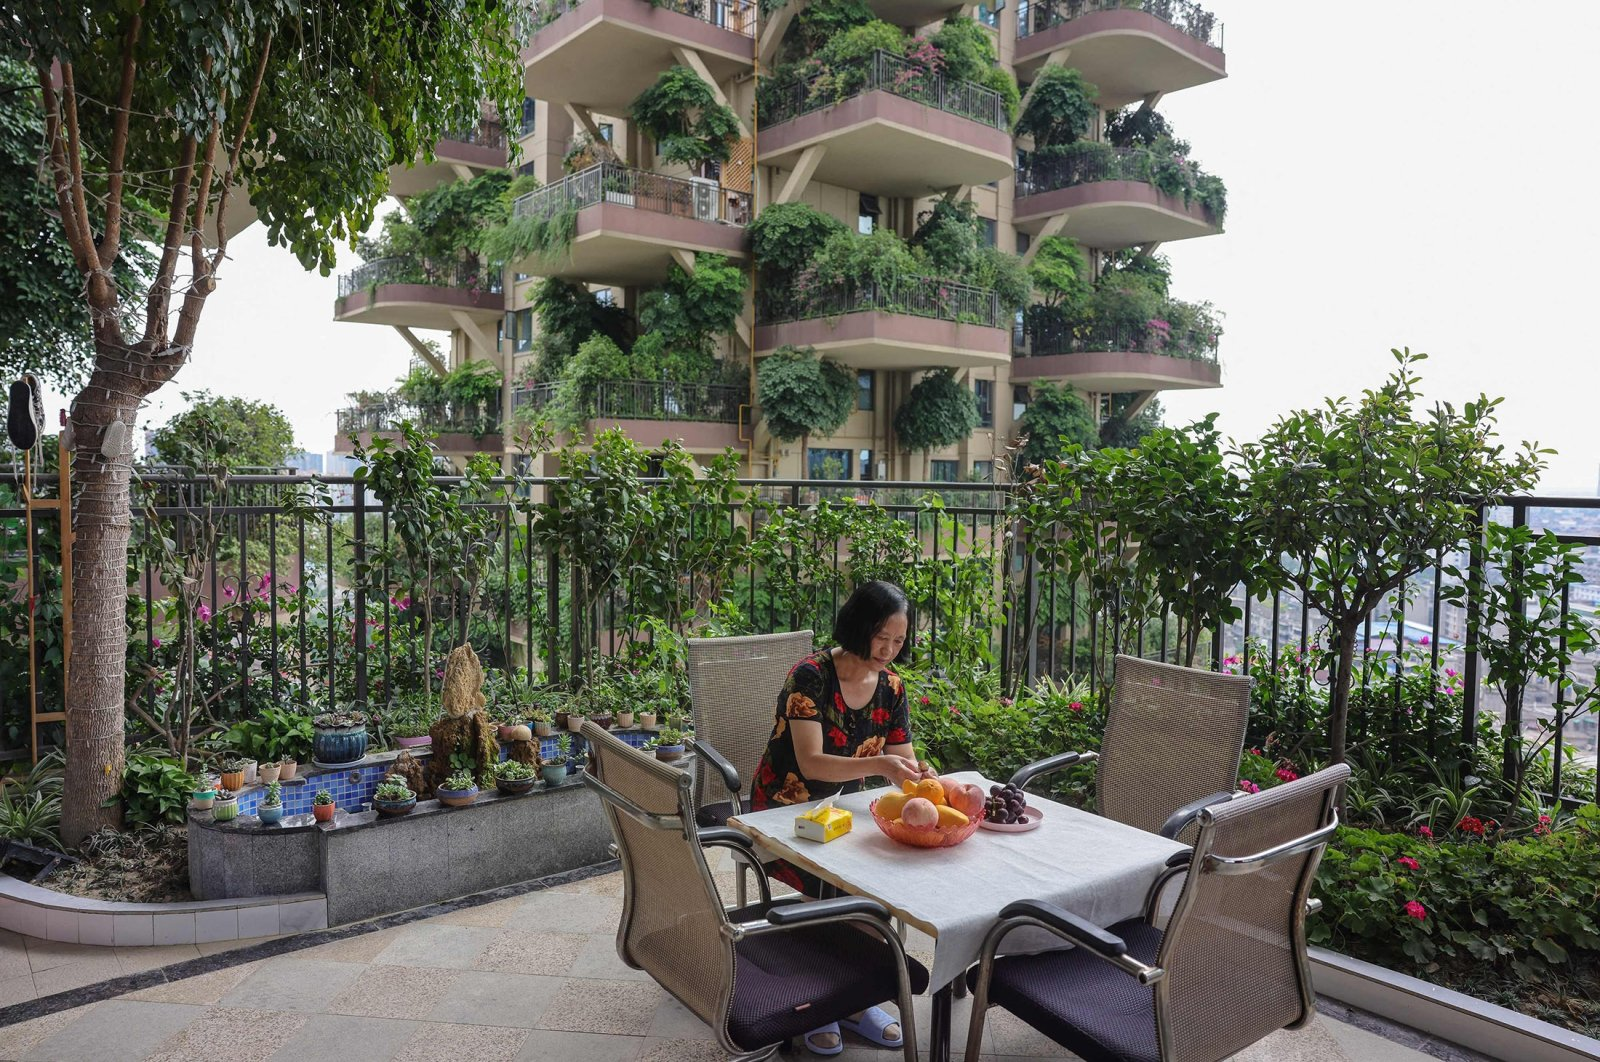 A woman sits on a balcony covered with plants at a residential community in Chengdu in China's southwestern Sichuan province, July 12, 2021. (AFP Photo)